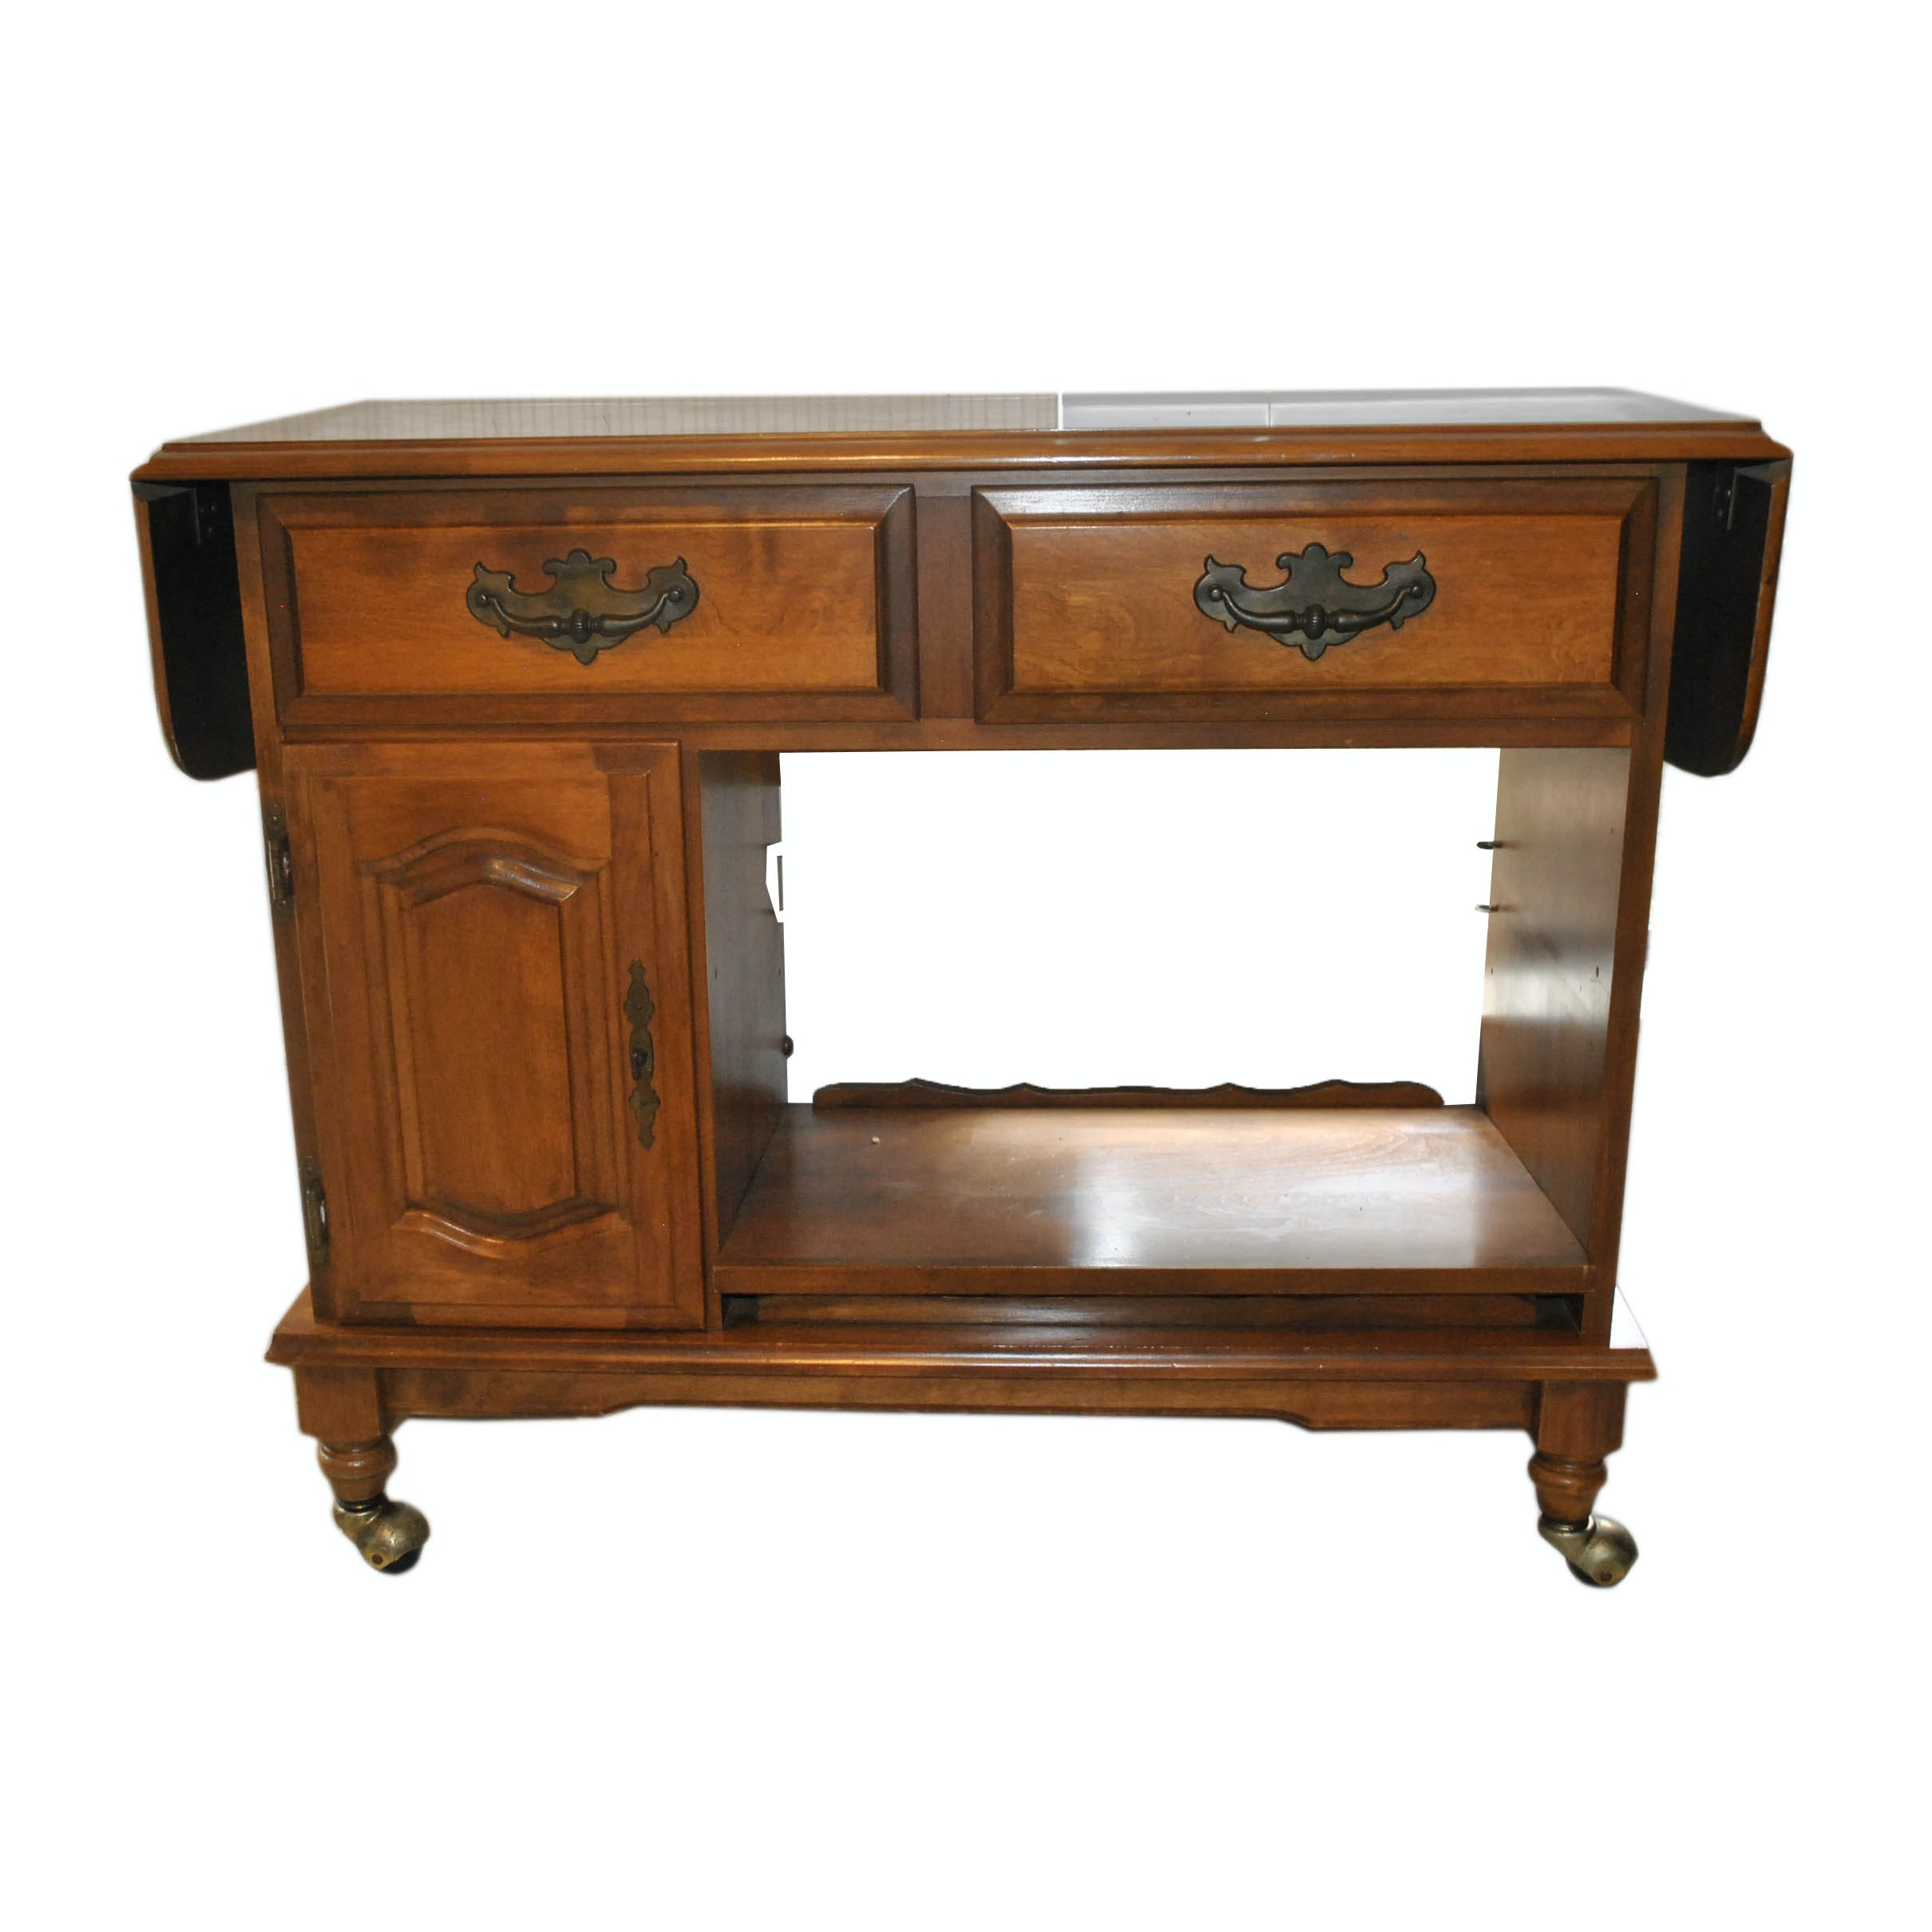 Colonial Style Drop Leaf Buffet Table with Casters